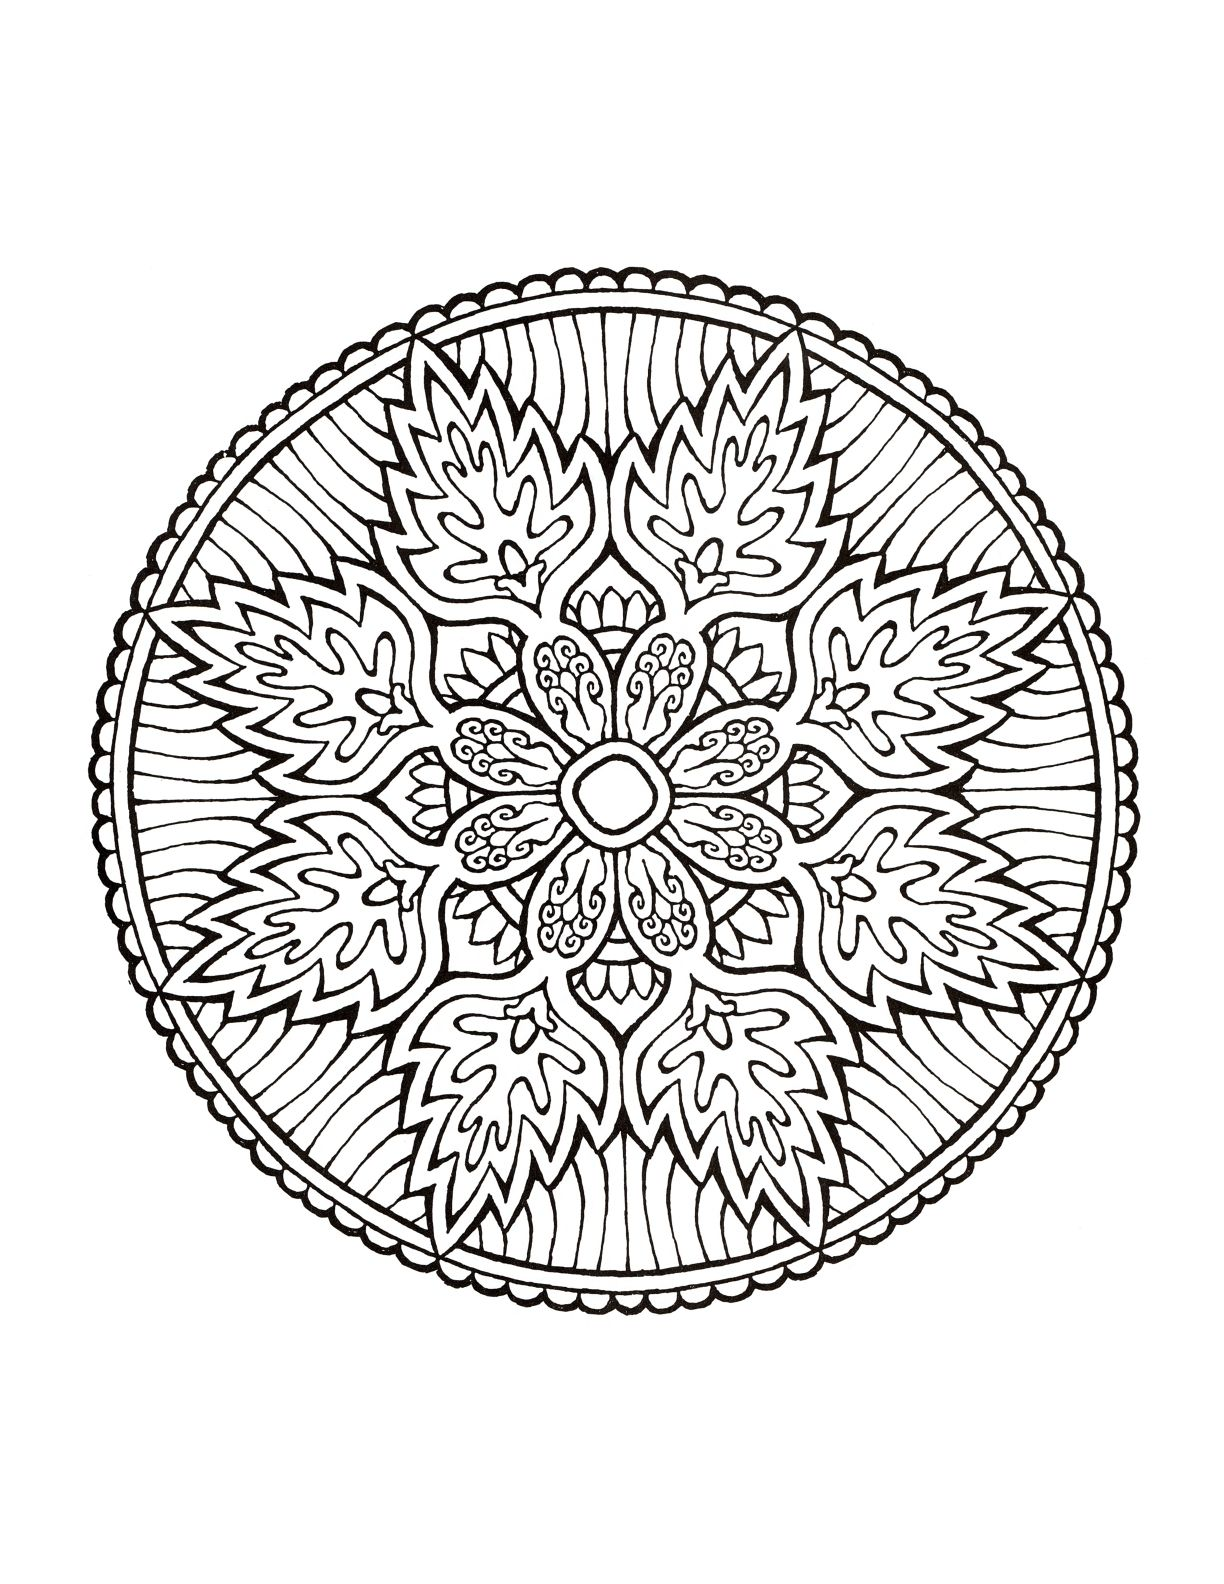 Mystical mandala coloring pages - Dover coloring book mystical mandala coloring book